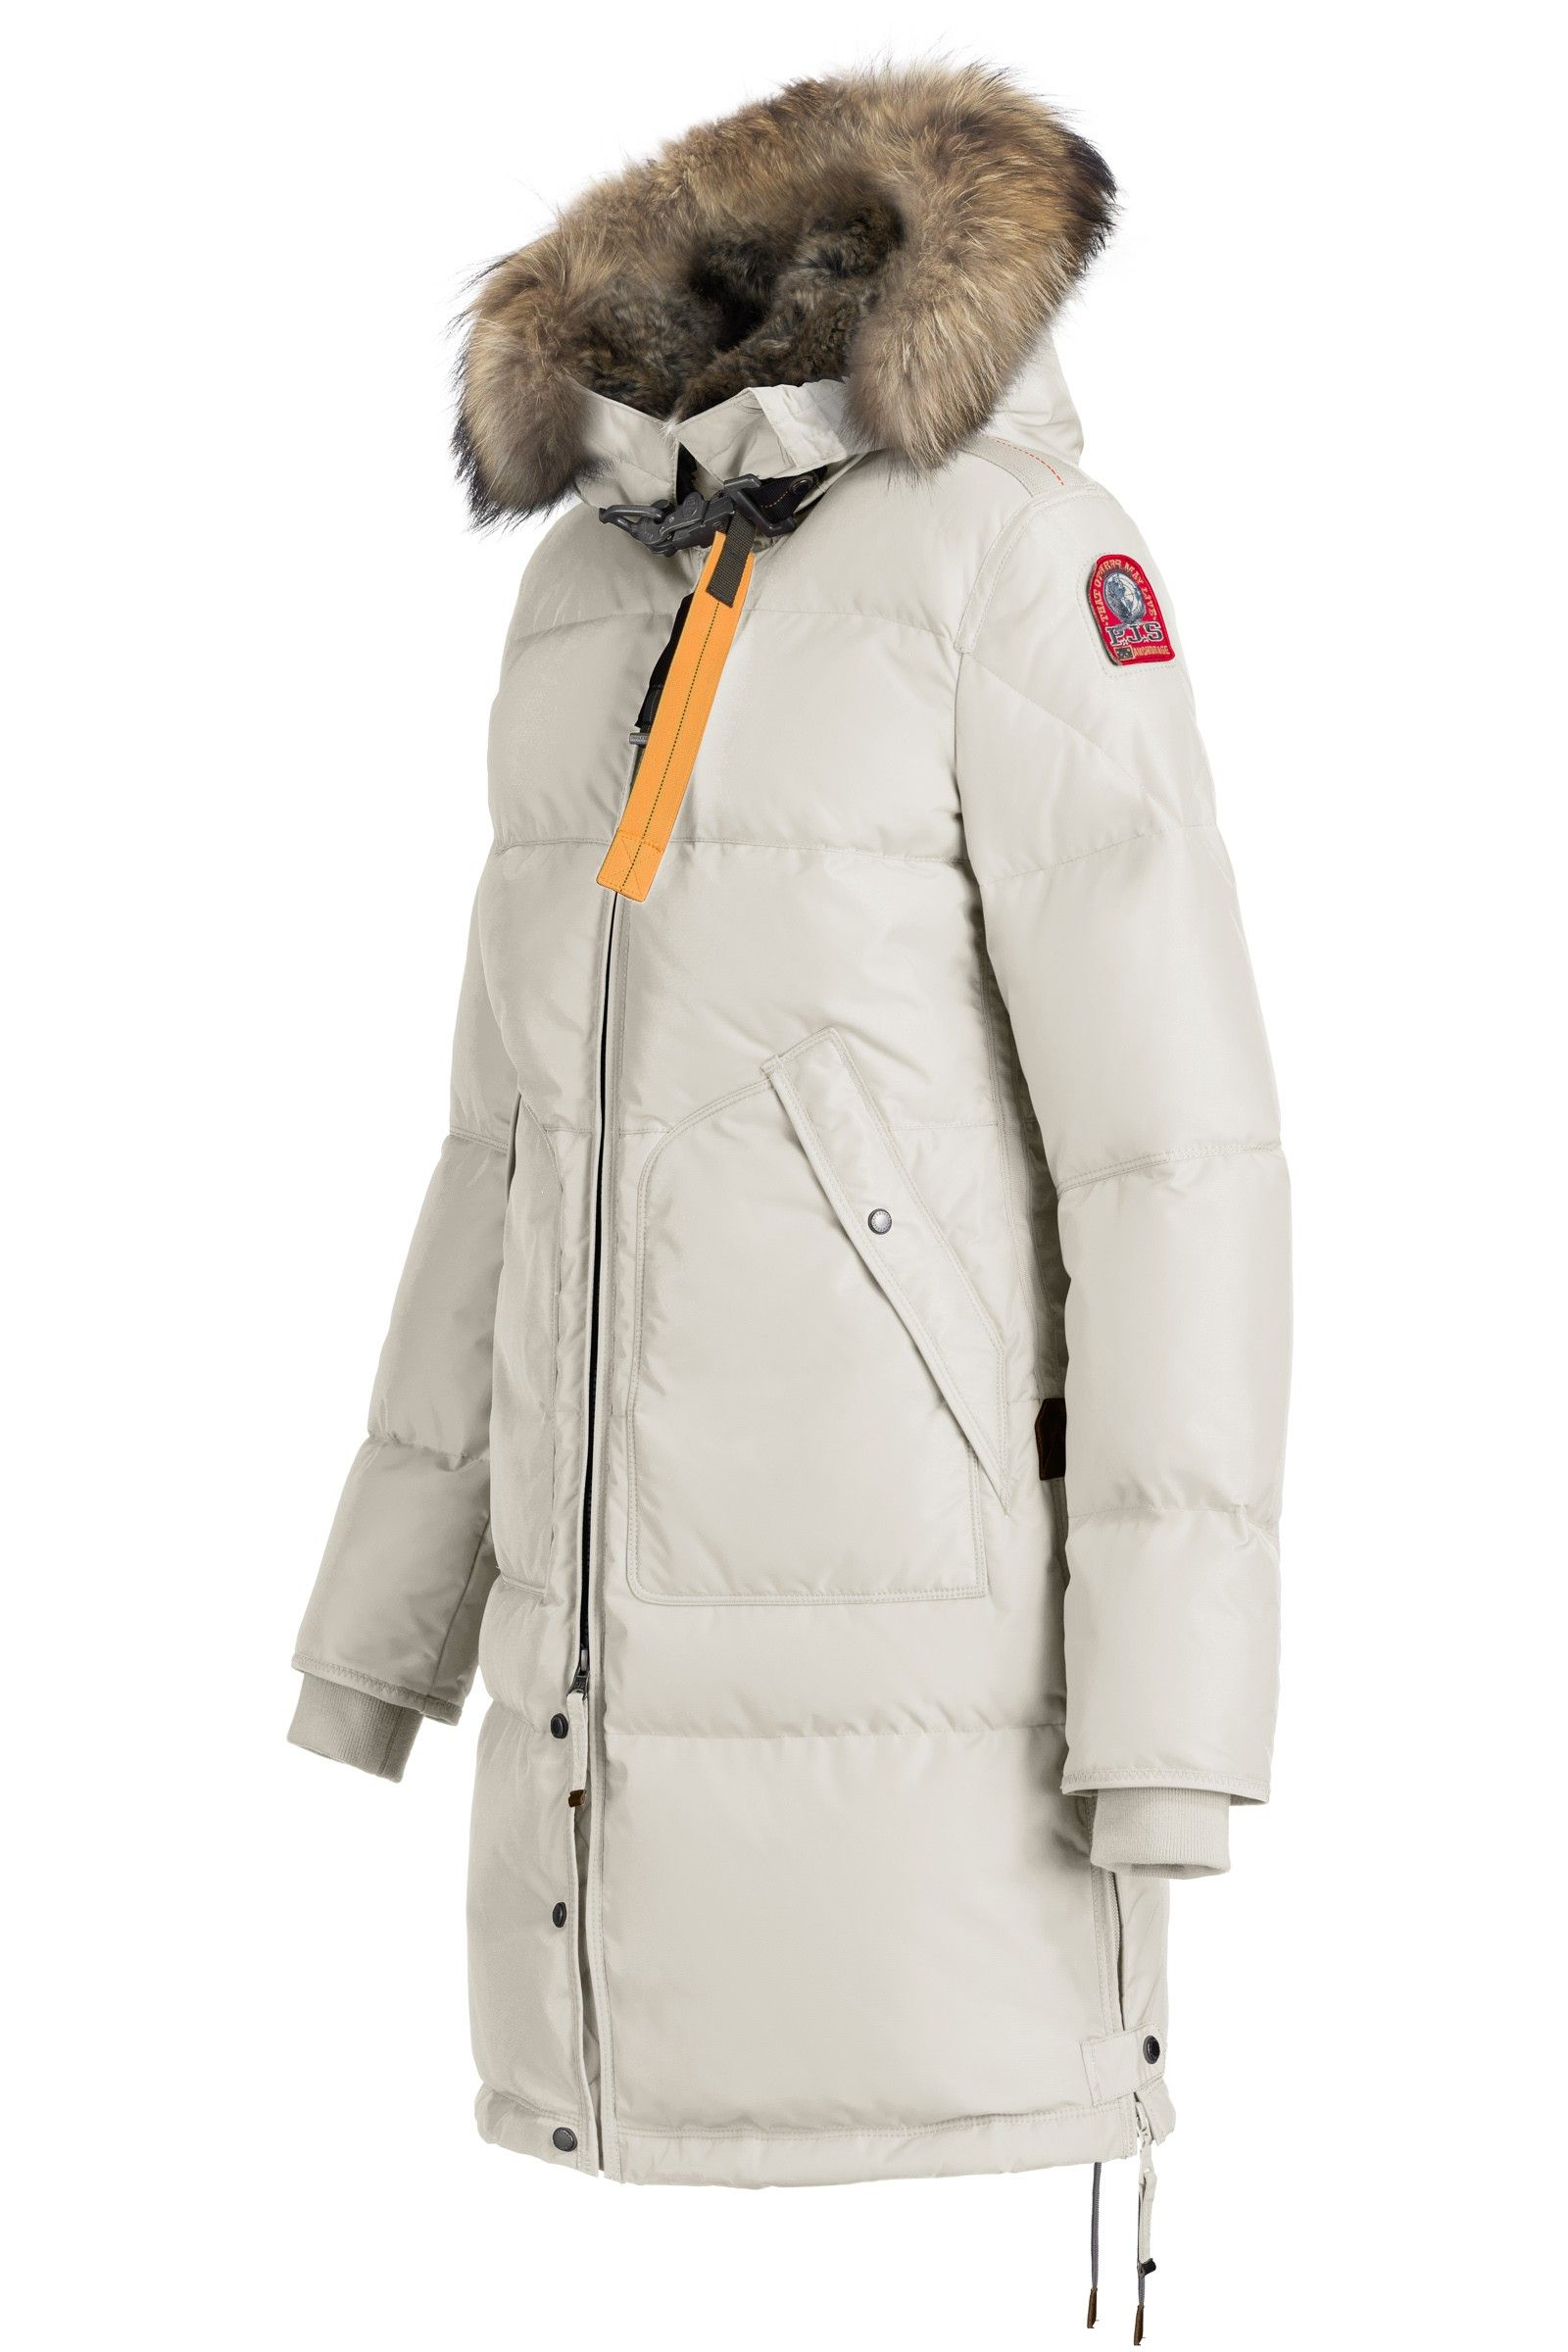 White Long Bear Lapin Fur-W For Woman: Parajumpers ® Parkas $1100